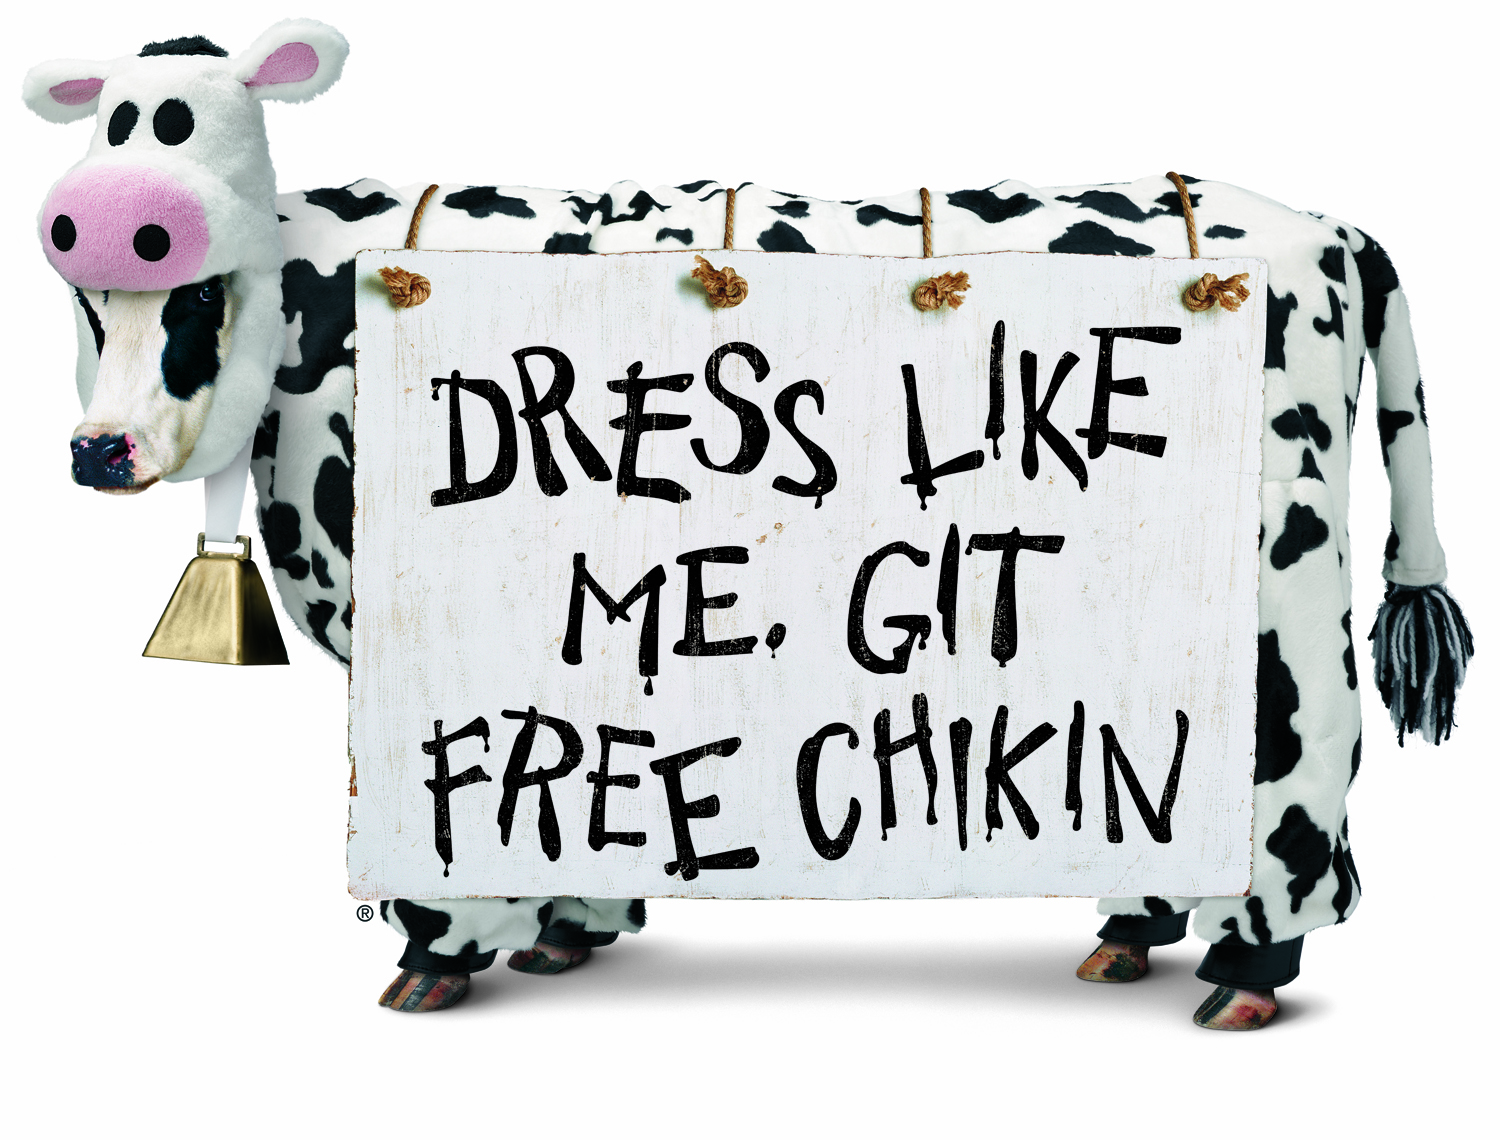 July 11 | Dress In Cow Attire And Get Free Chick-fil-A !